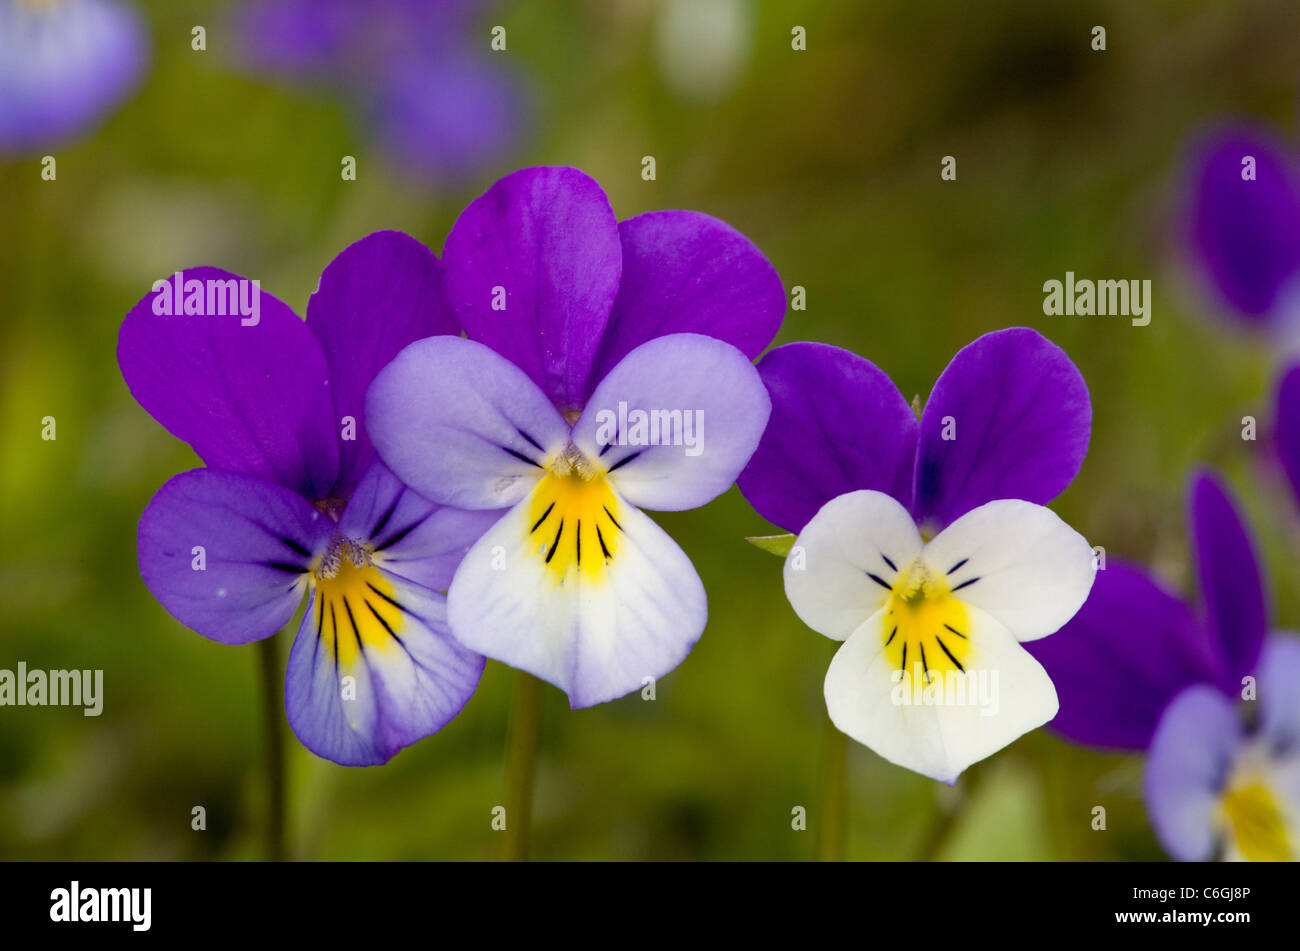 Wild Pansy, or Heartsease, Viola tricolor, in mountain pasture. Bulgaria. - Stock Image